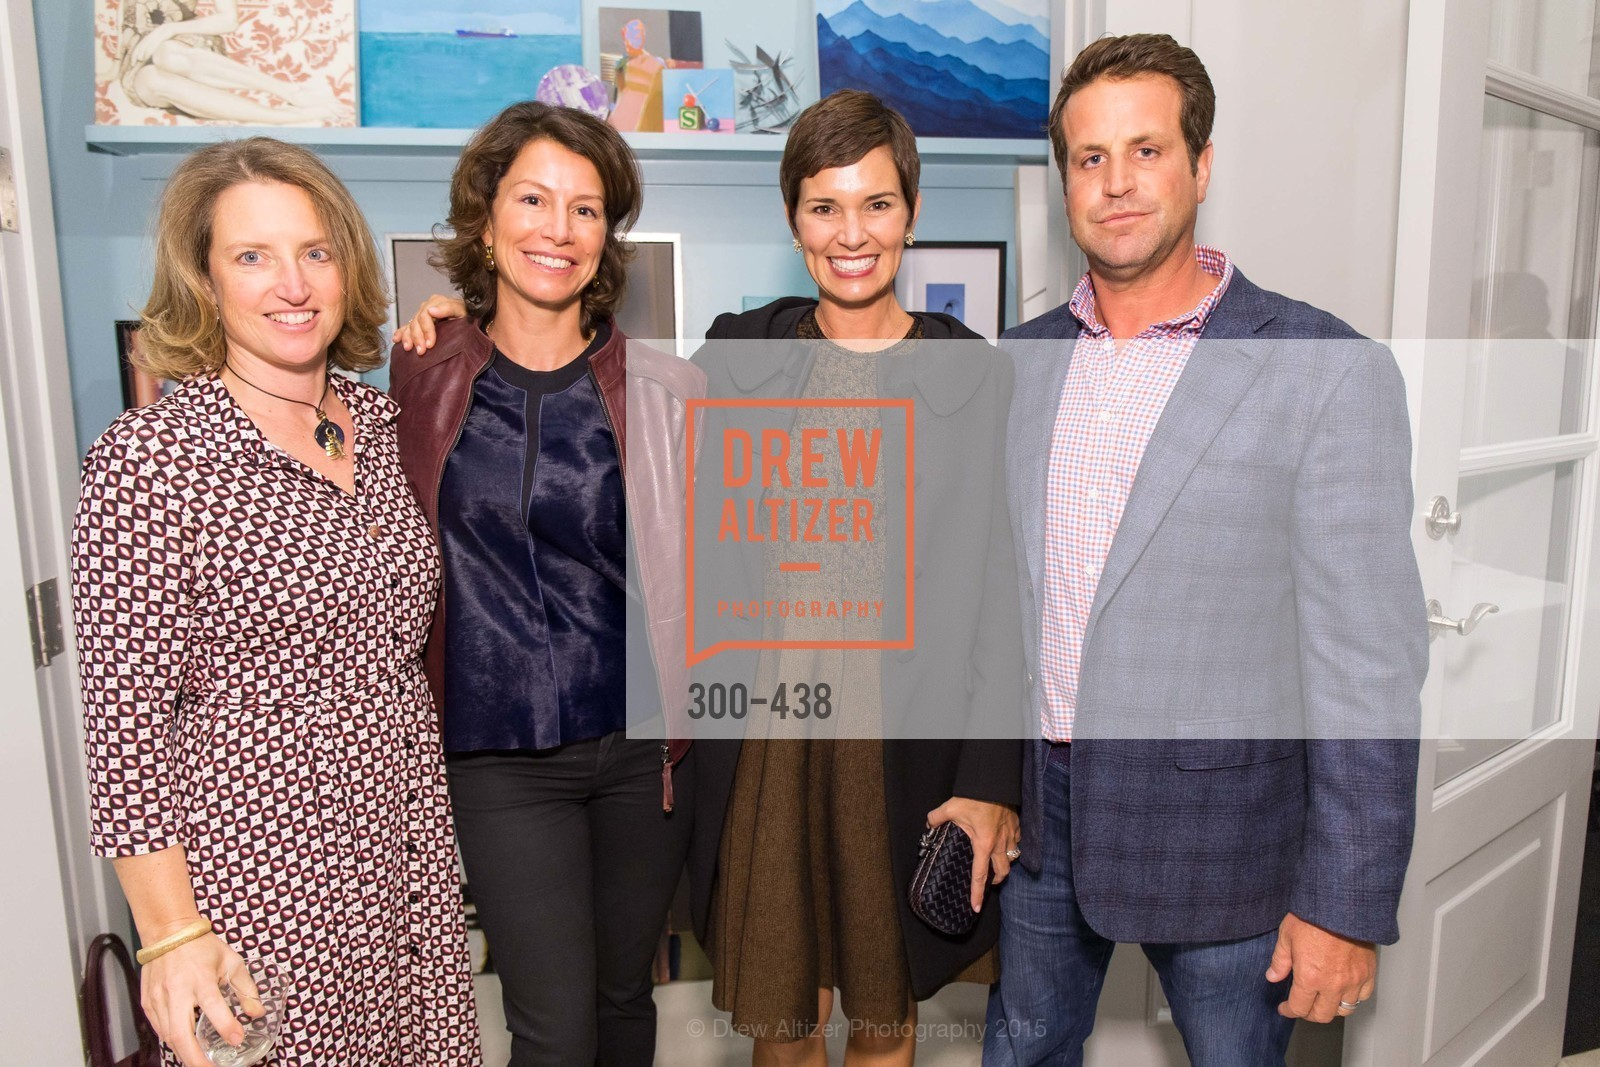 Tara Nian, Simone LaCorte, Susan Moody, Nick Heldfond, Stephanie Breitbard Fine Arts San Francisco Opening, Stephanie Breitbard Fine Arts. 843 Montgomery St, November 4th, 2015,Drew Altizer, Drew Altizer Photography, full-service agency, private events, San Francisco photographer, photographer california